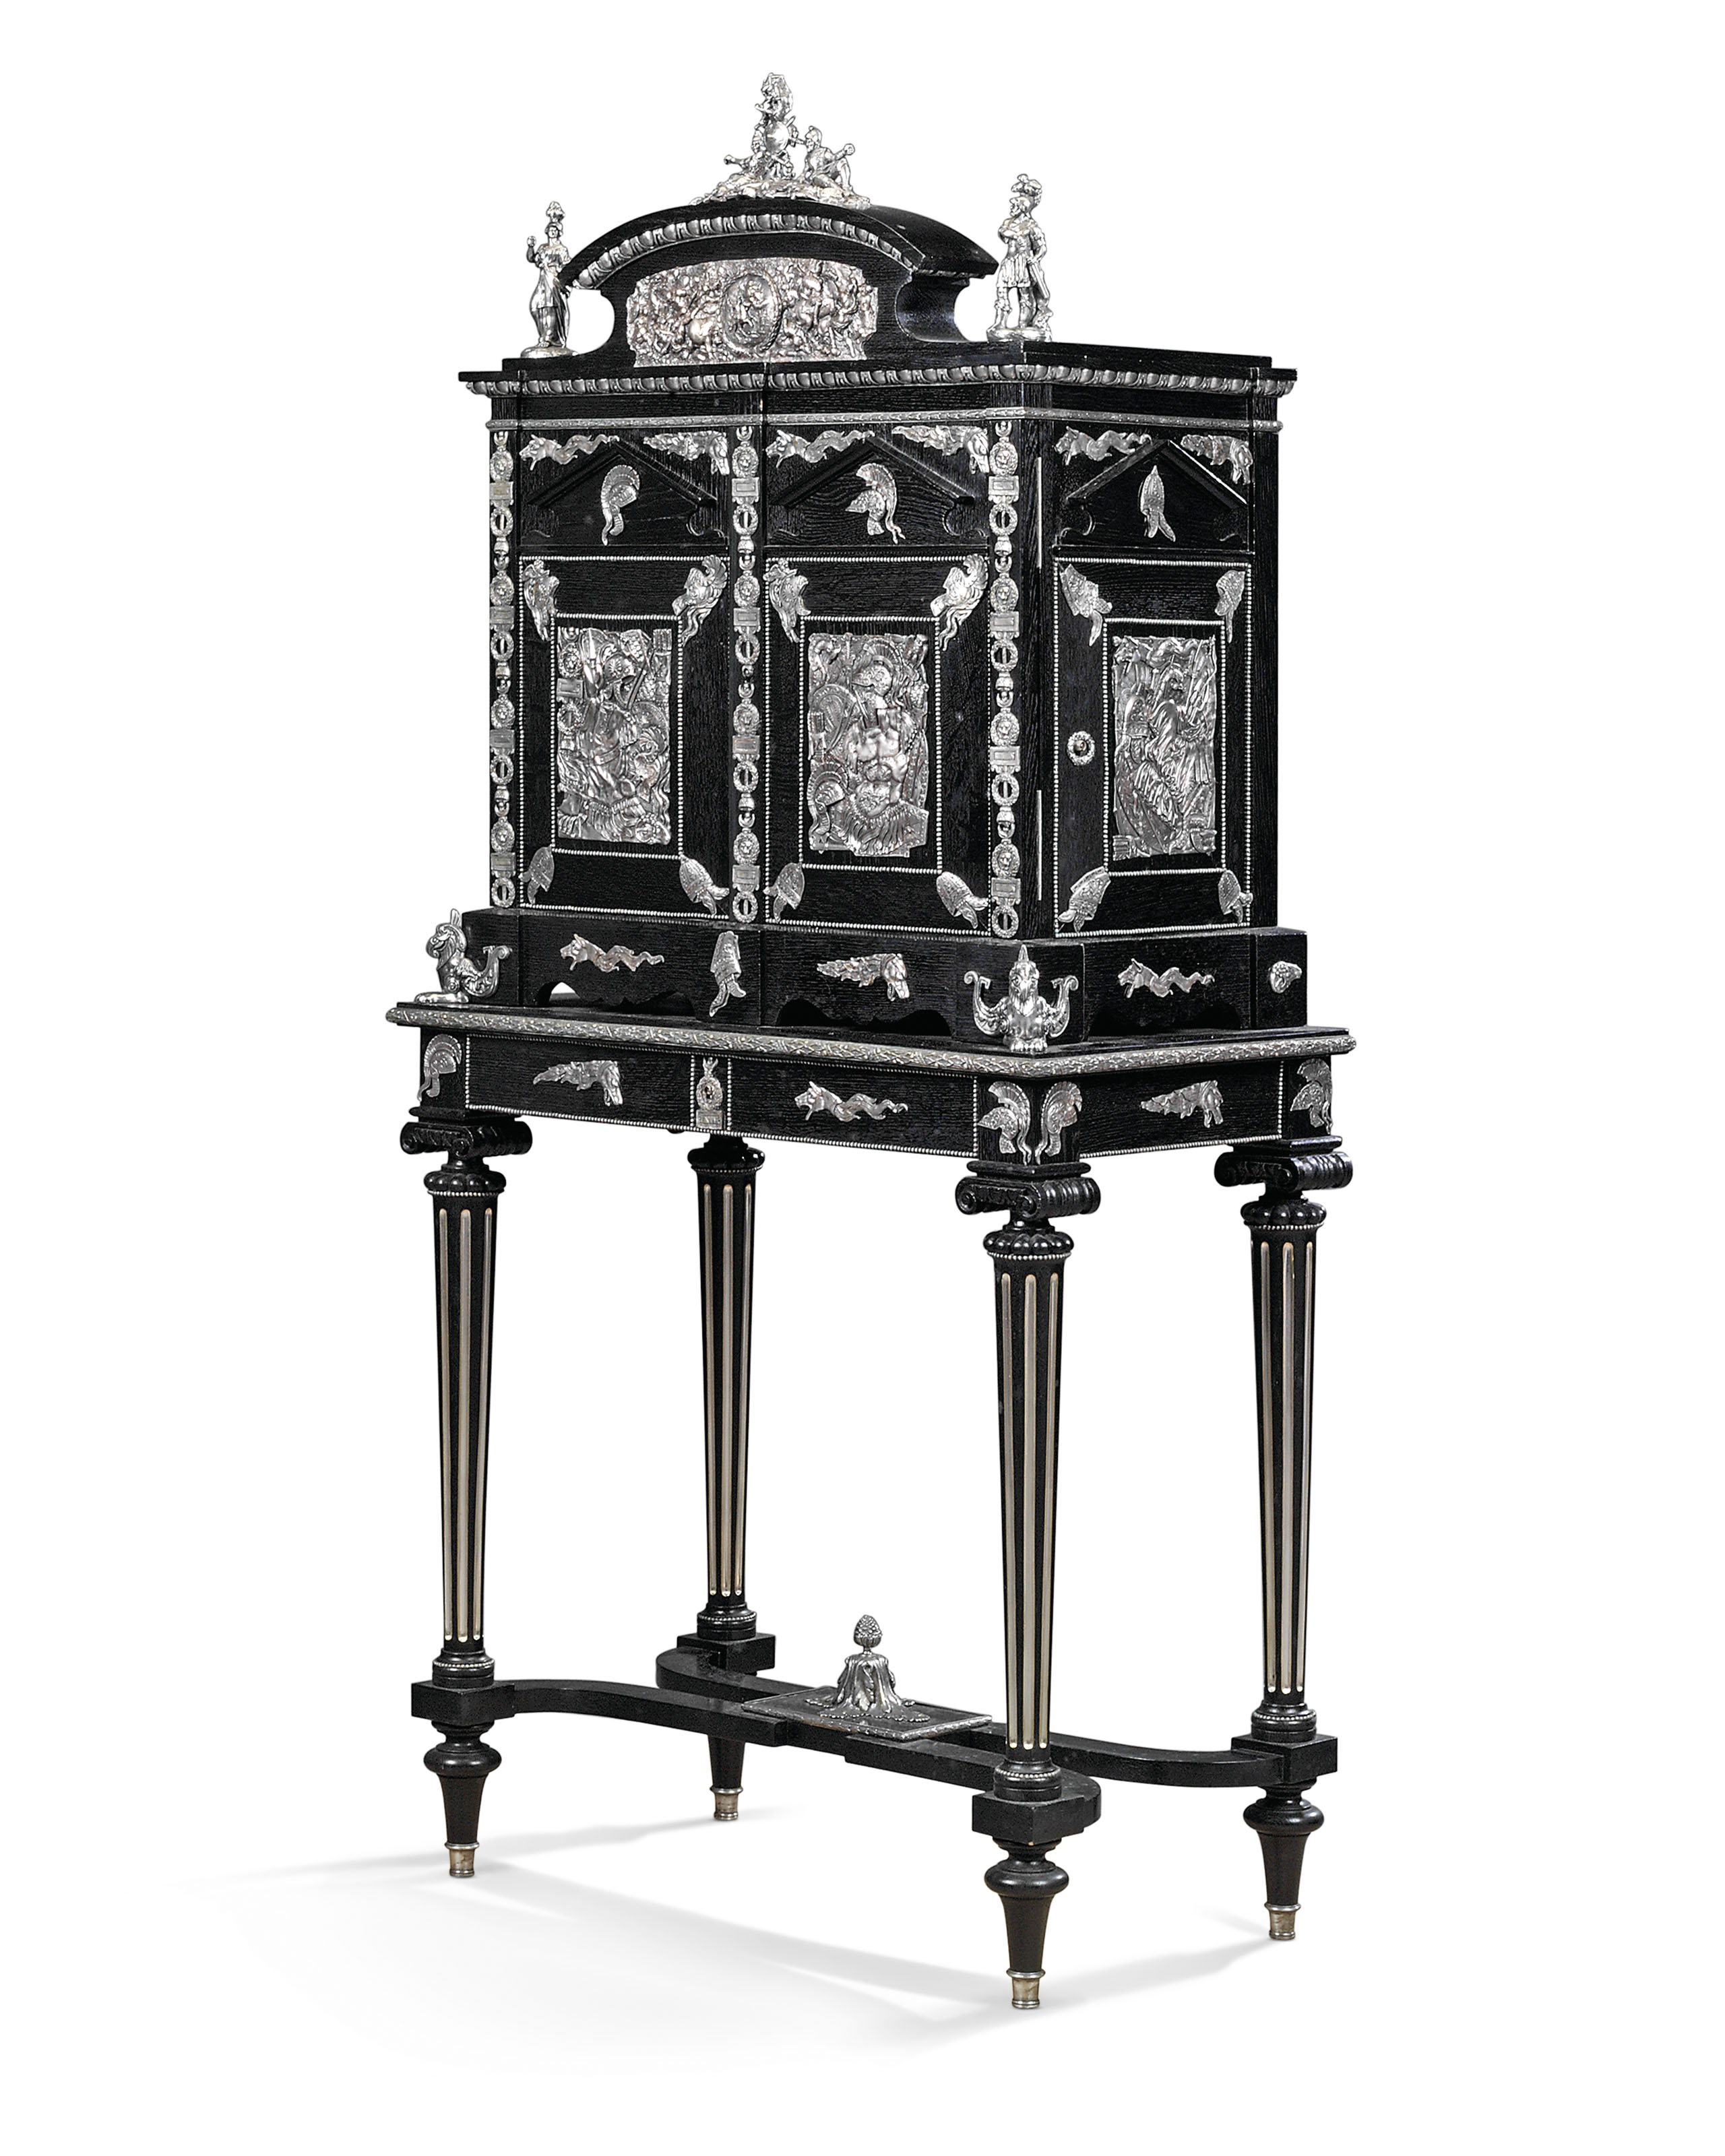 A NAPOLEON III SILVERED-COPPER-MOUNTED EBONISED-OAK CIGAR CABINET ON STAND